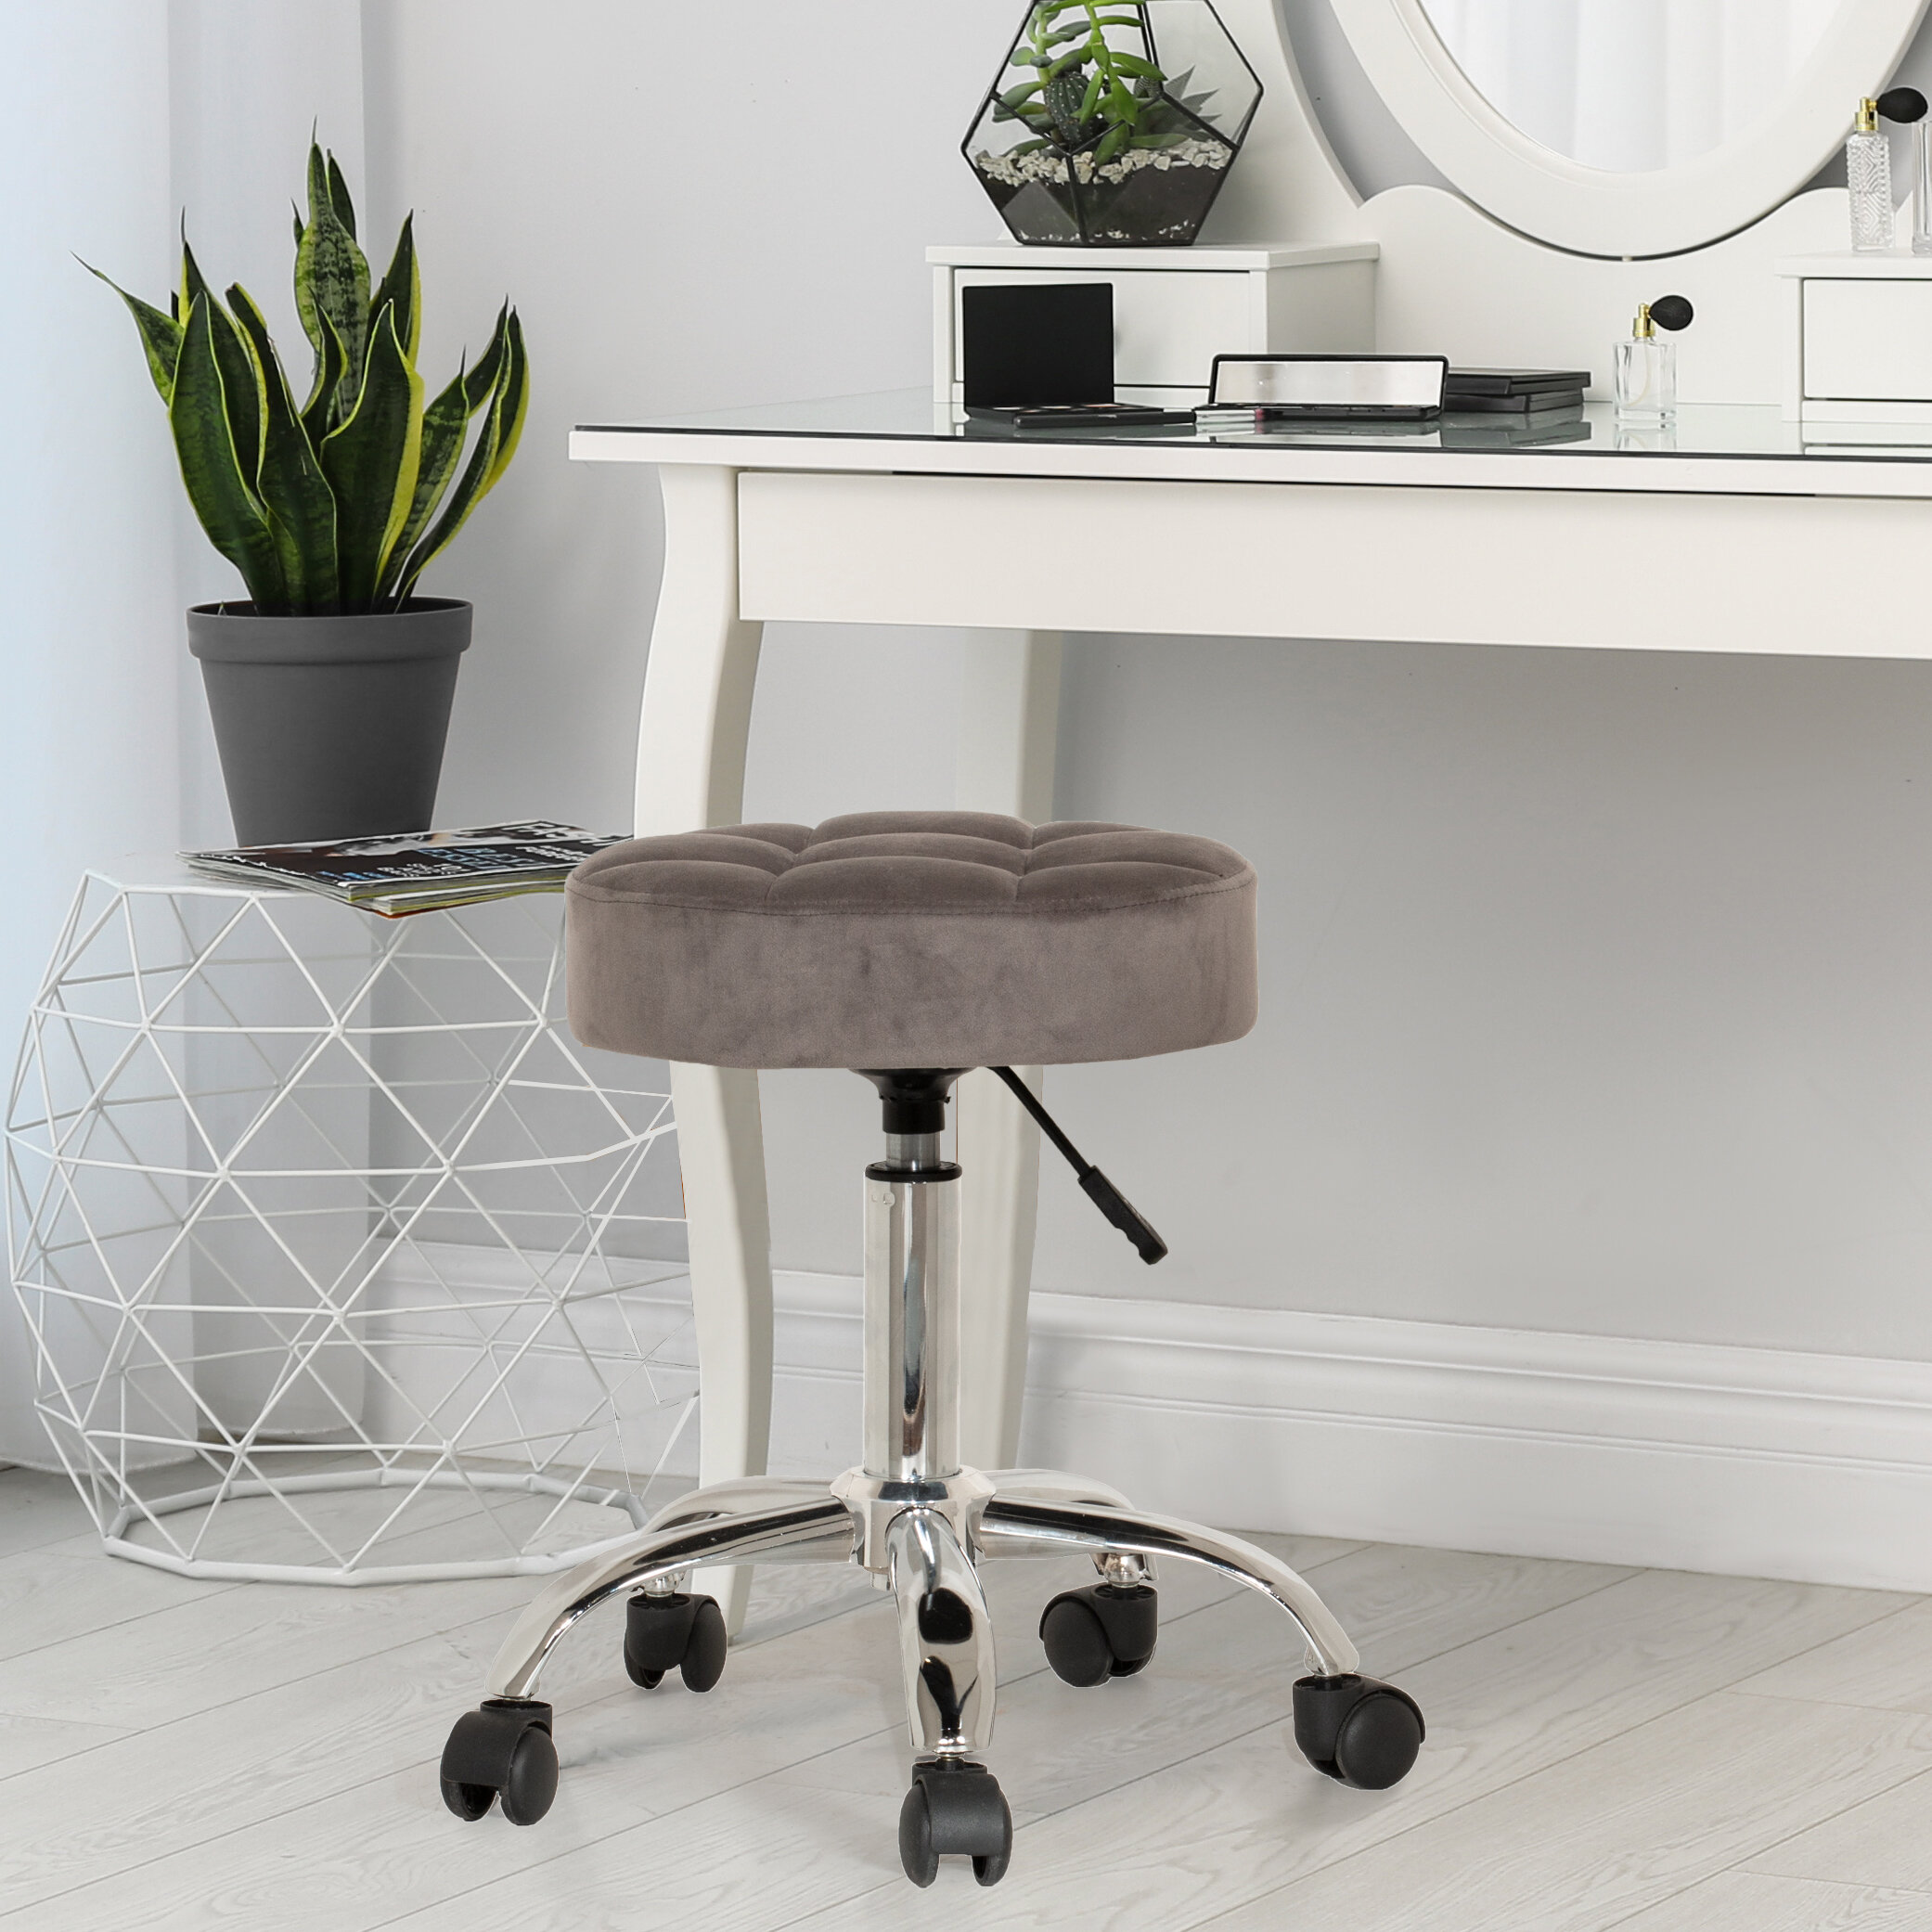 Color : GRAY WXQ Bedroom Dressing Table Stool Wrought Iron Gold Metal Legs Vanity Stool Modern Small Round Stool For Living Room Fitting Room